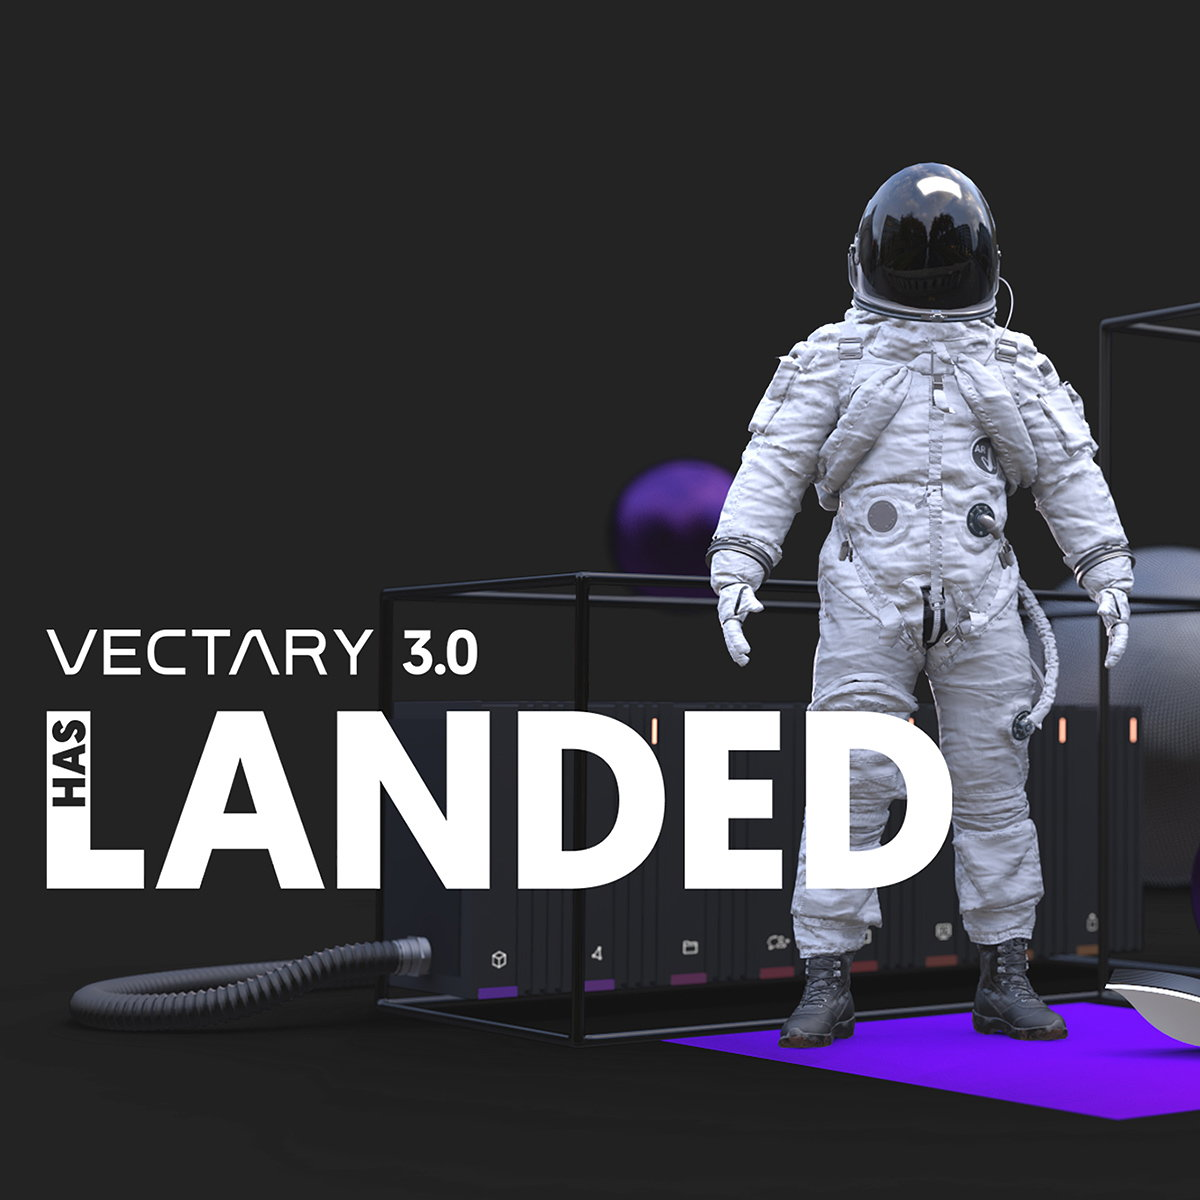 Vectary Releases 3.0